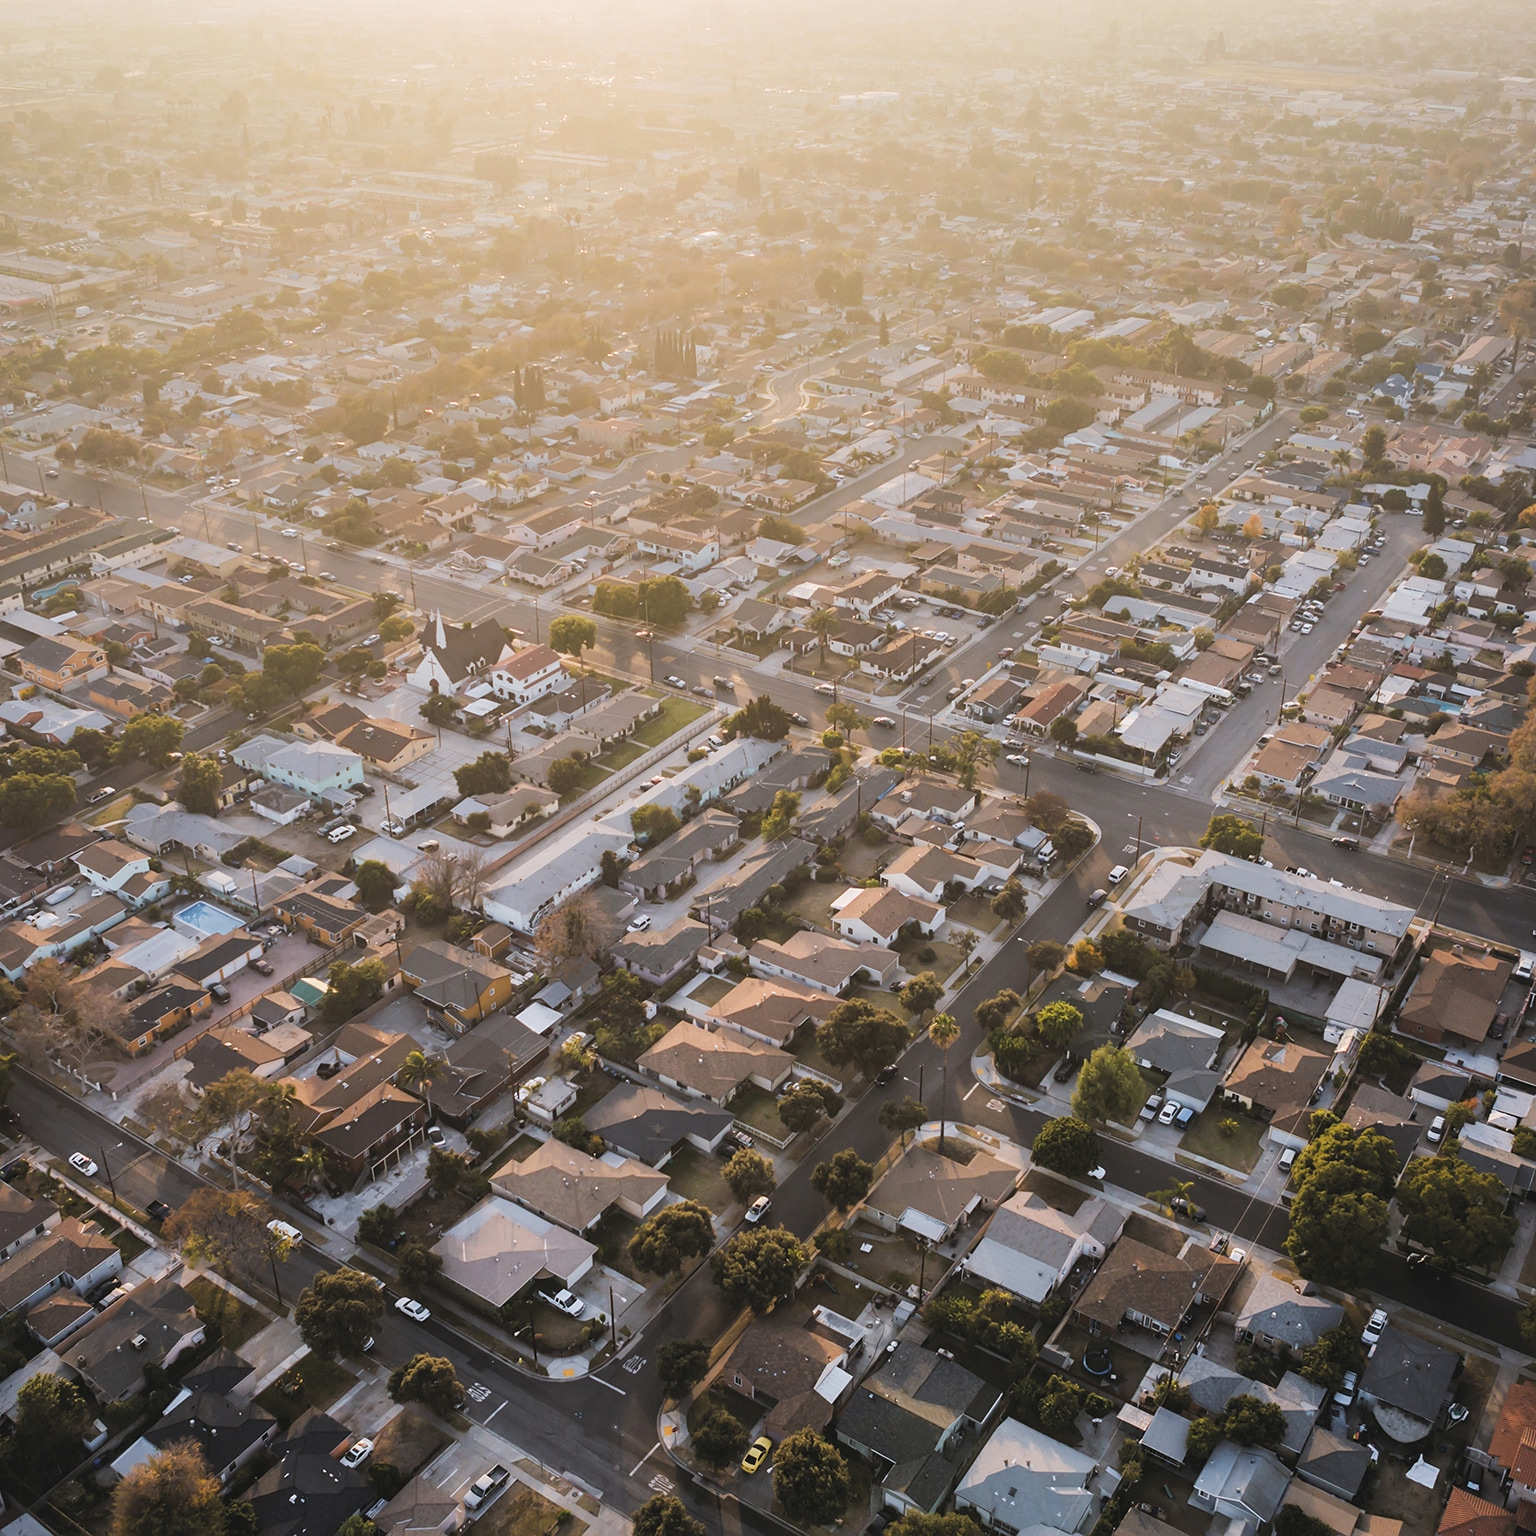 Preserving the largest and most at-risk supply of affordable housing